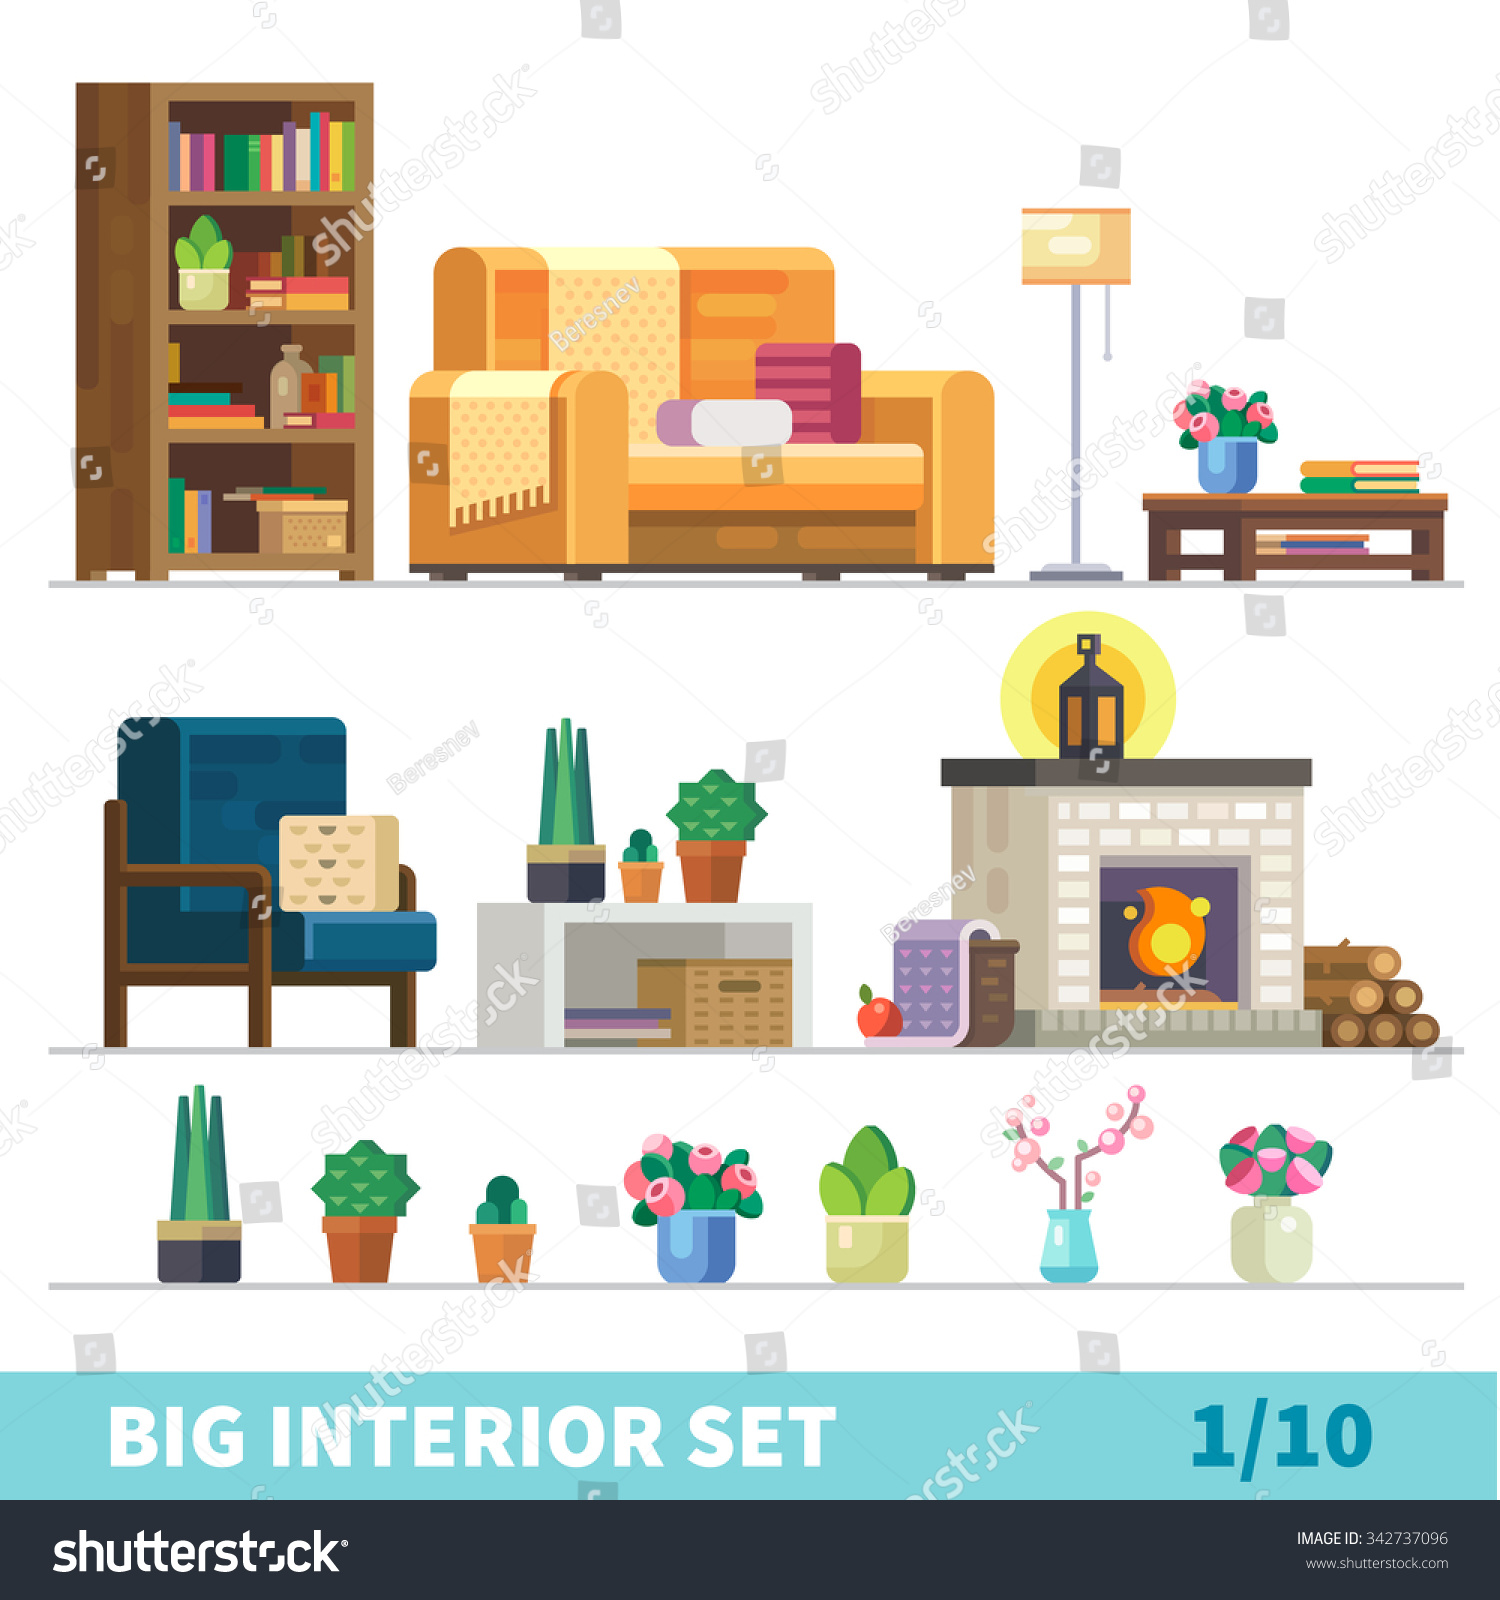 Cozy Living Room Vector Illustration: Big Detailed Interior Set. Cozy Living Room: Nice Couch